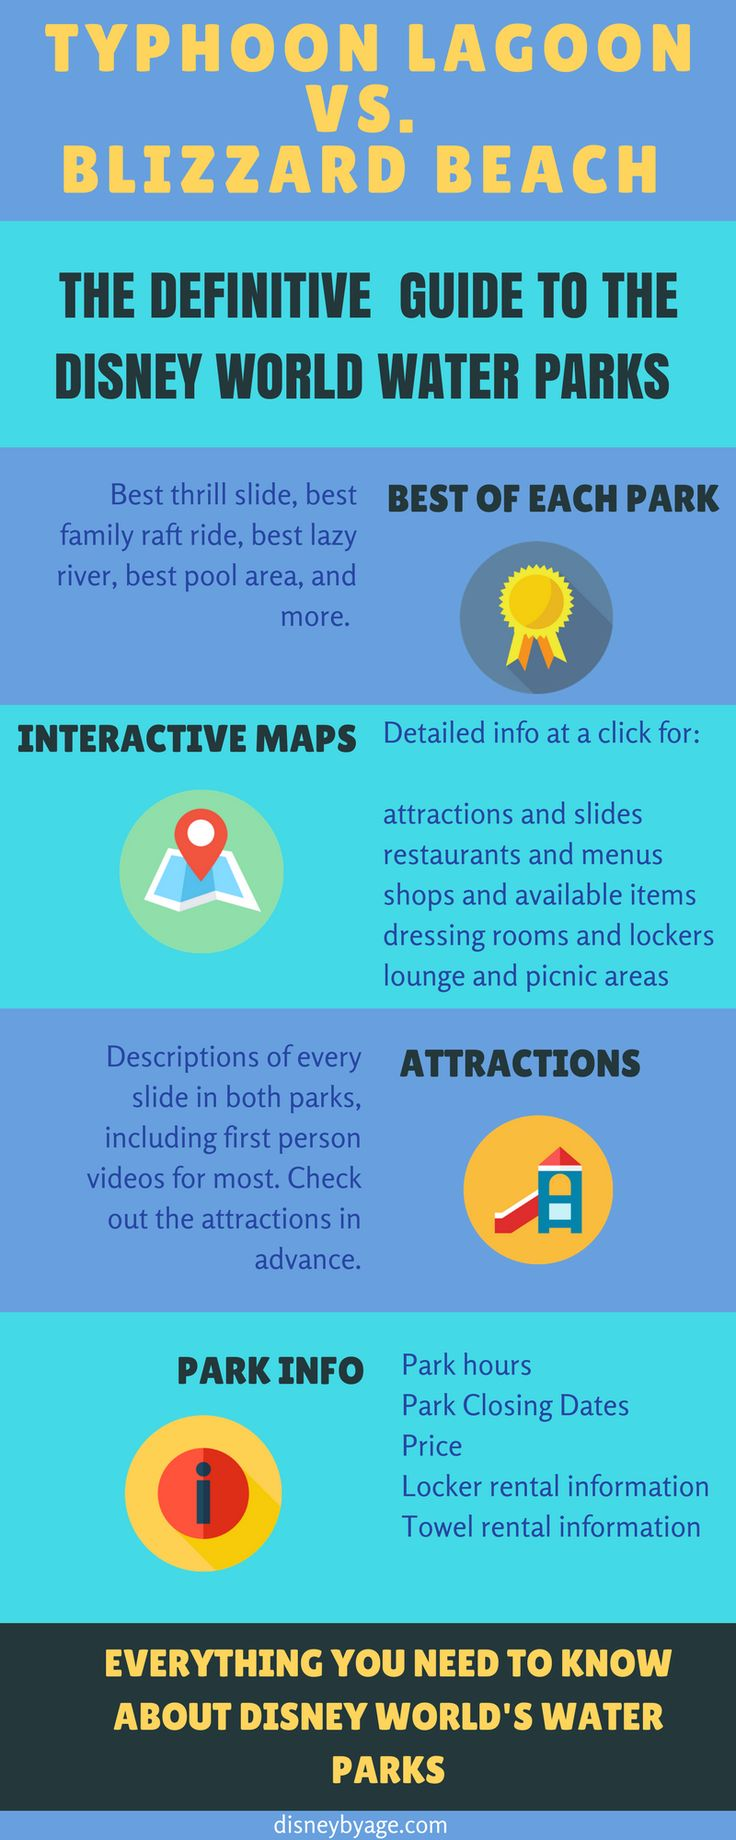 Typhoon Lagoon versus Blizzard Beach  The Definitive Guide to the Disney World Water Parks  Includes interactive maps with information on each attraction, restaurant, locker room, shop and picnic spot